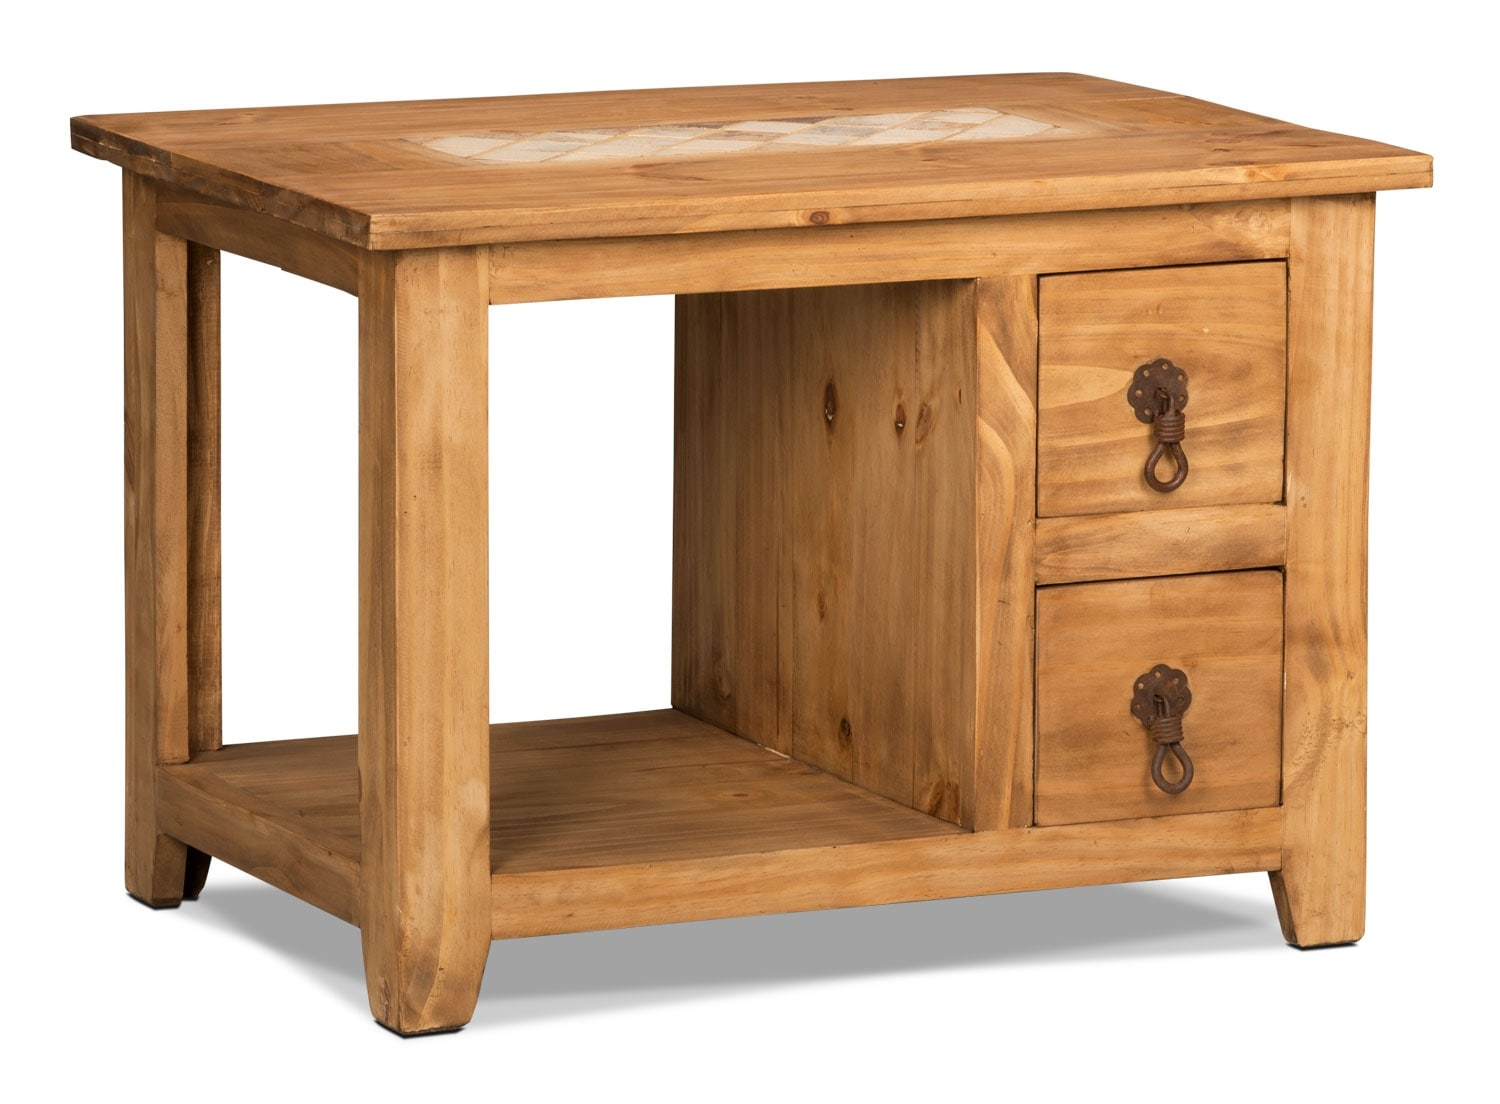 Santa Fe Rusticos Solid Pine End Table with Marble Inset